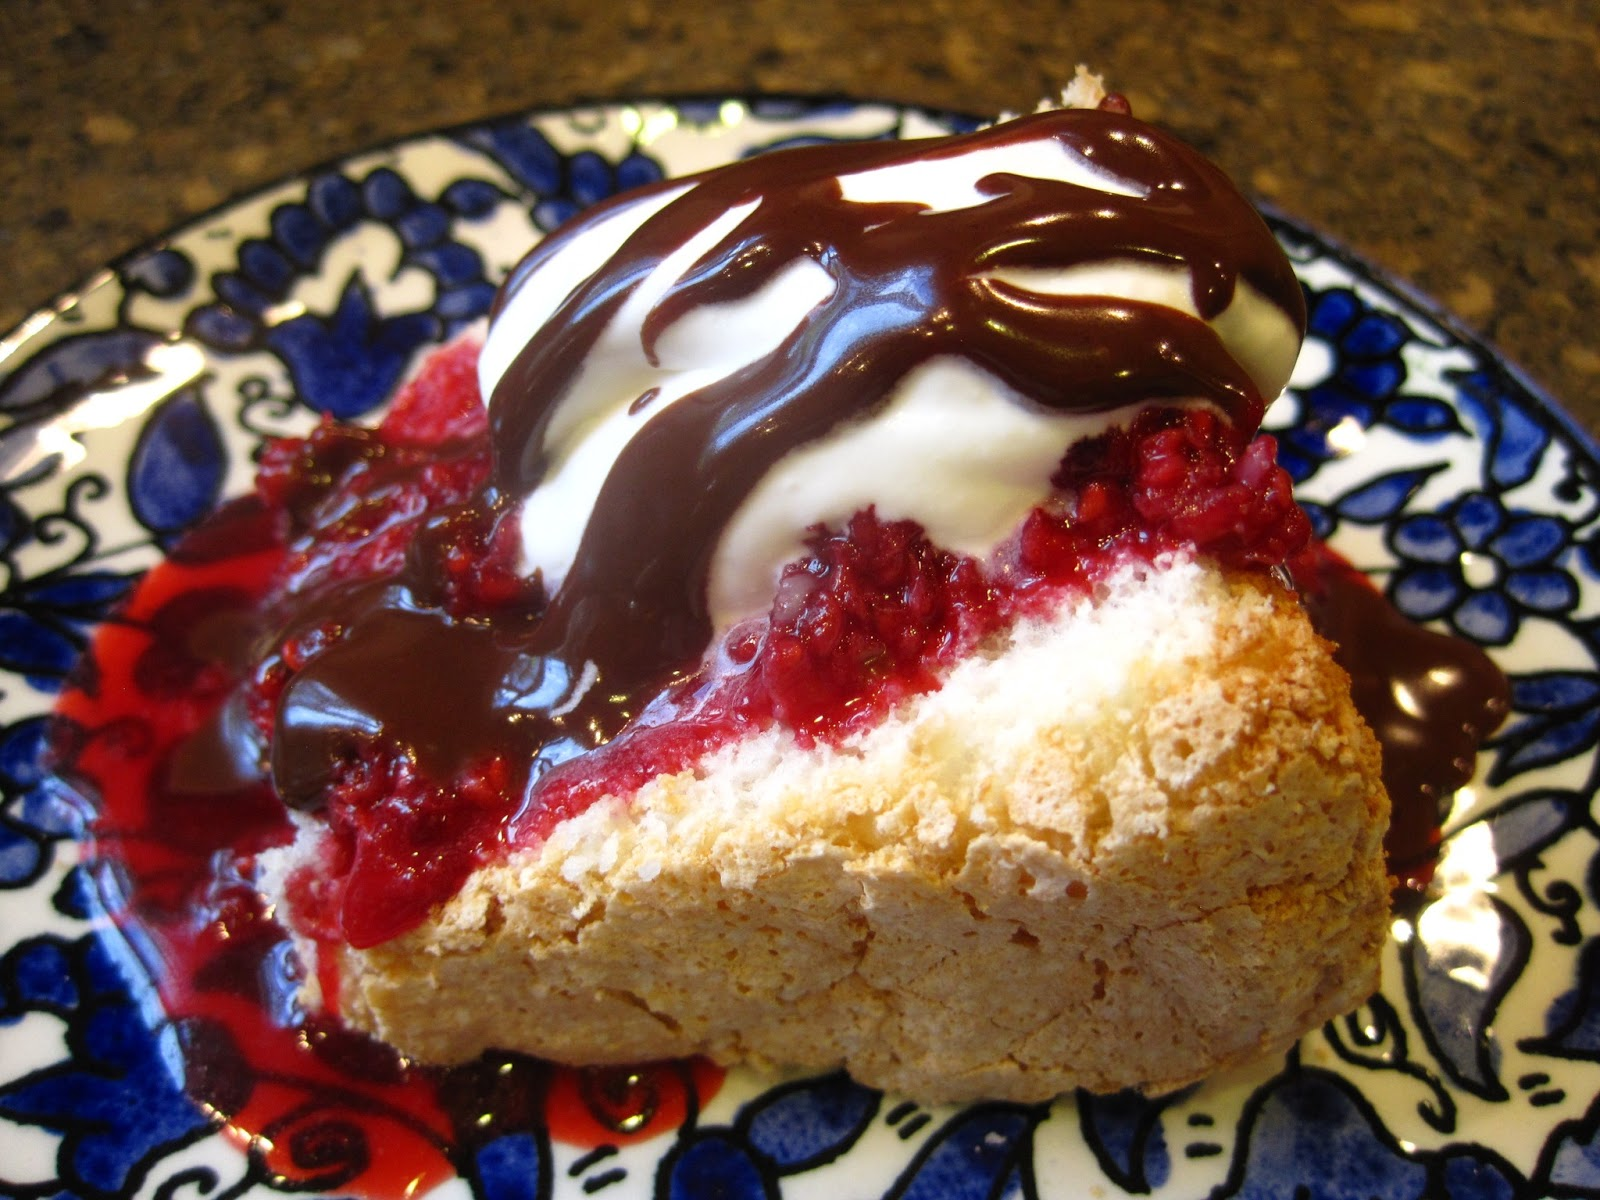 Angel food cake mama monsons kitchen this cake has almost no fat one slice 110th of the cake is 165 calories without toppings and even plain it is super good forumfinder Gallery